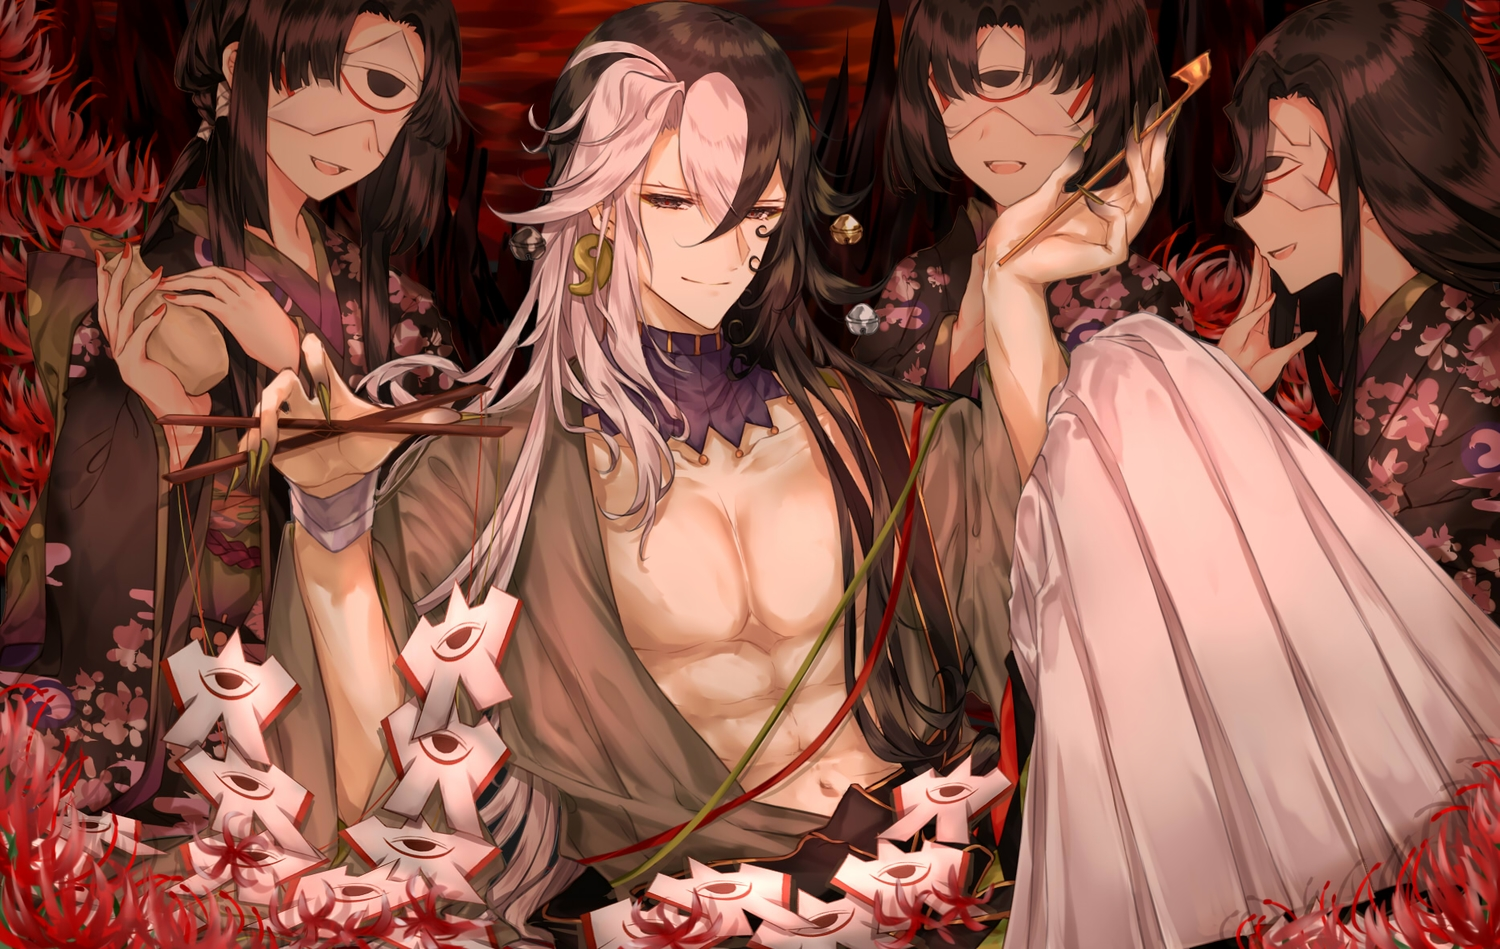 ashiya_douman bell black_eyes black_hair doll drink fate/grand_order fate_(series) flowers group japanese_clothes kimono long_hair male mask open_shirt paper puppet purionpurion sake short_hair wristwear